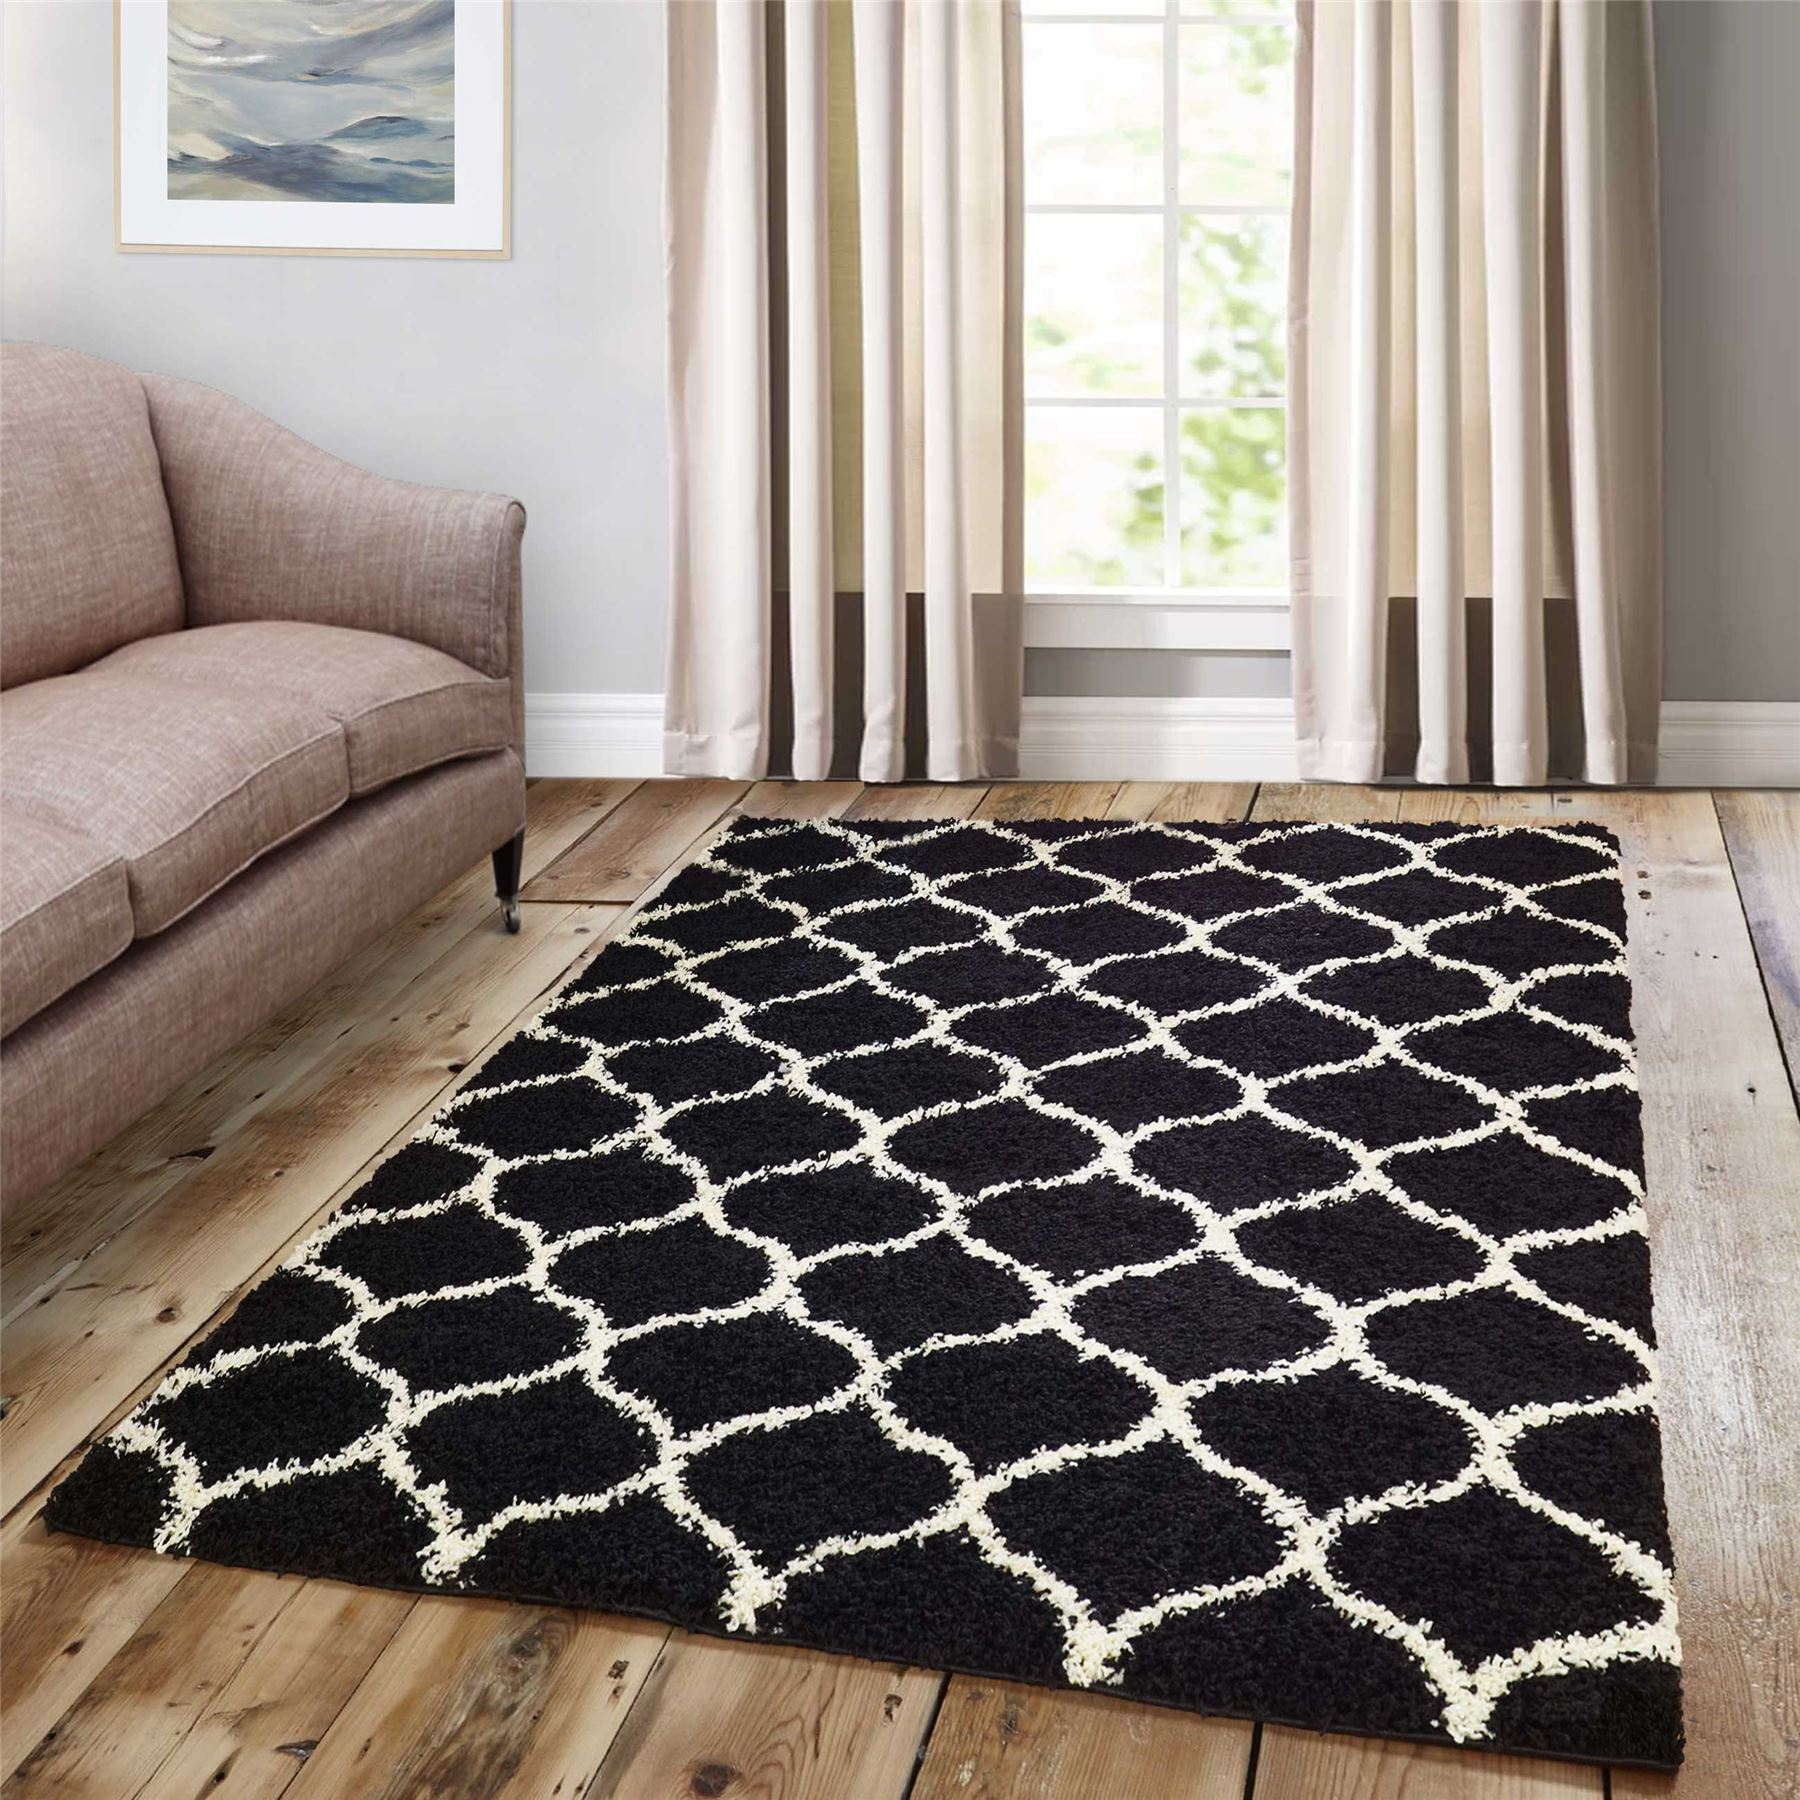 Dense-Pile-Trellis-Bedroom-Carpets-Thick-Shaggy-Rugs-Modern-Coloured-Pattern-Mat thumbnail 2